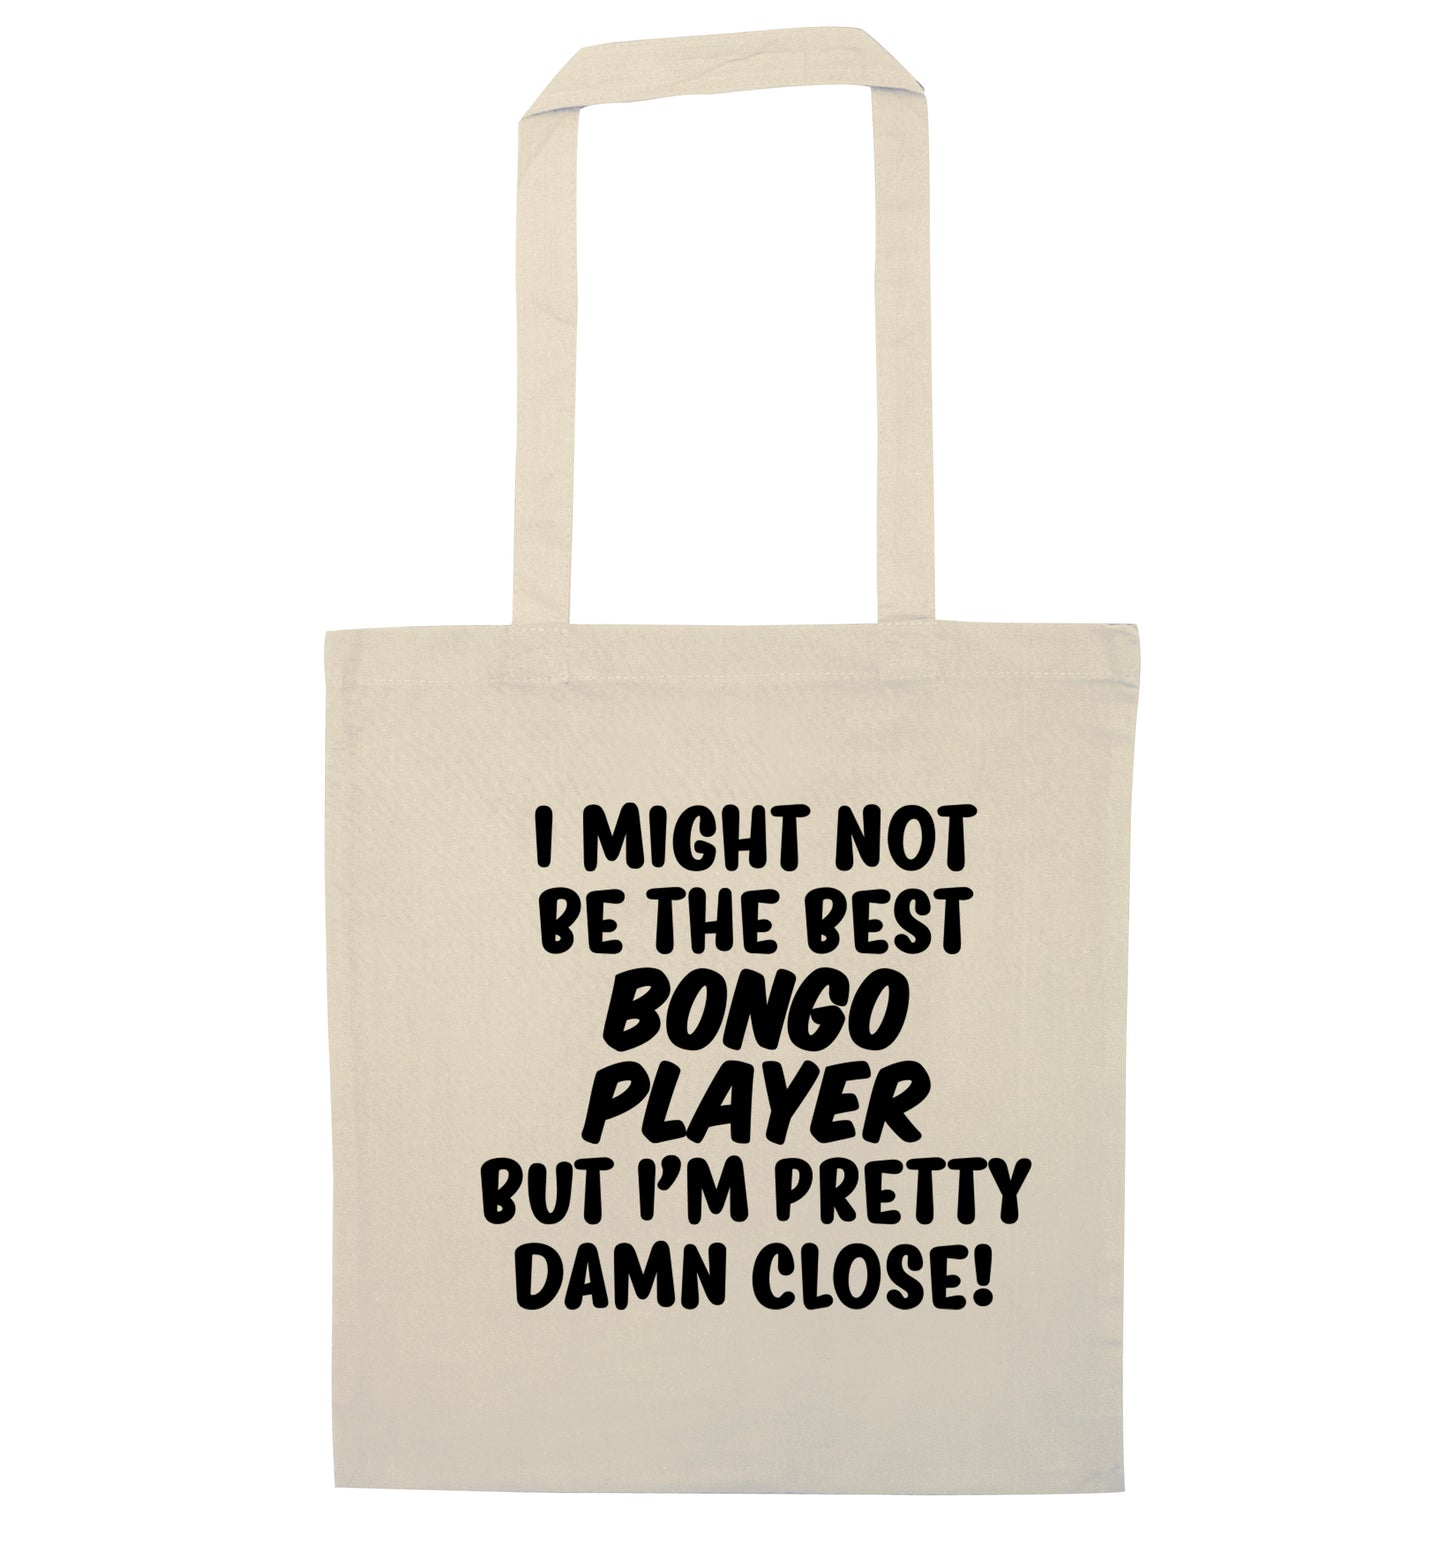 I might not be the best bongo player but I'm pretty close! natural tote bag